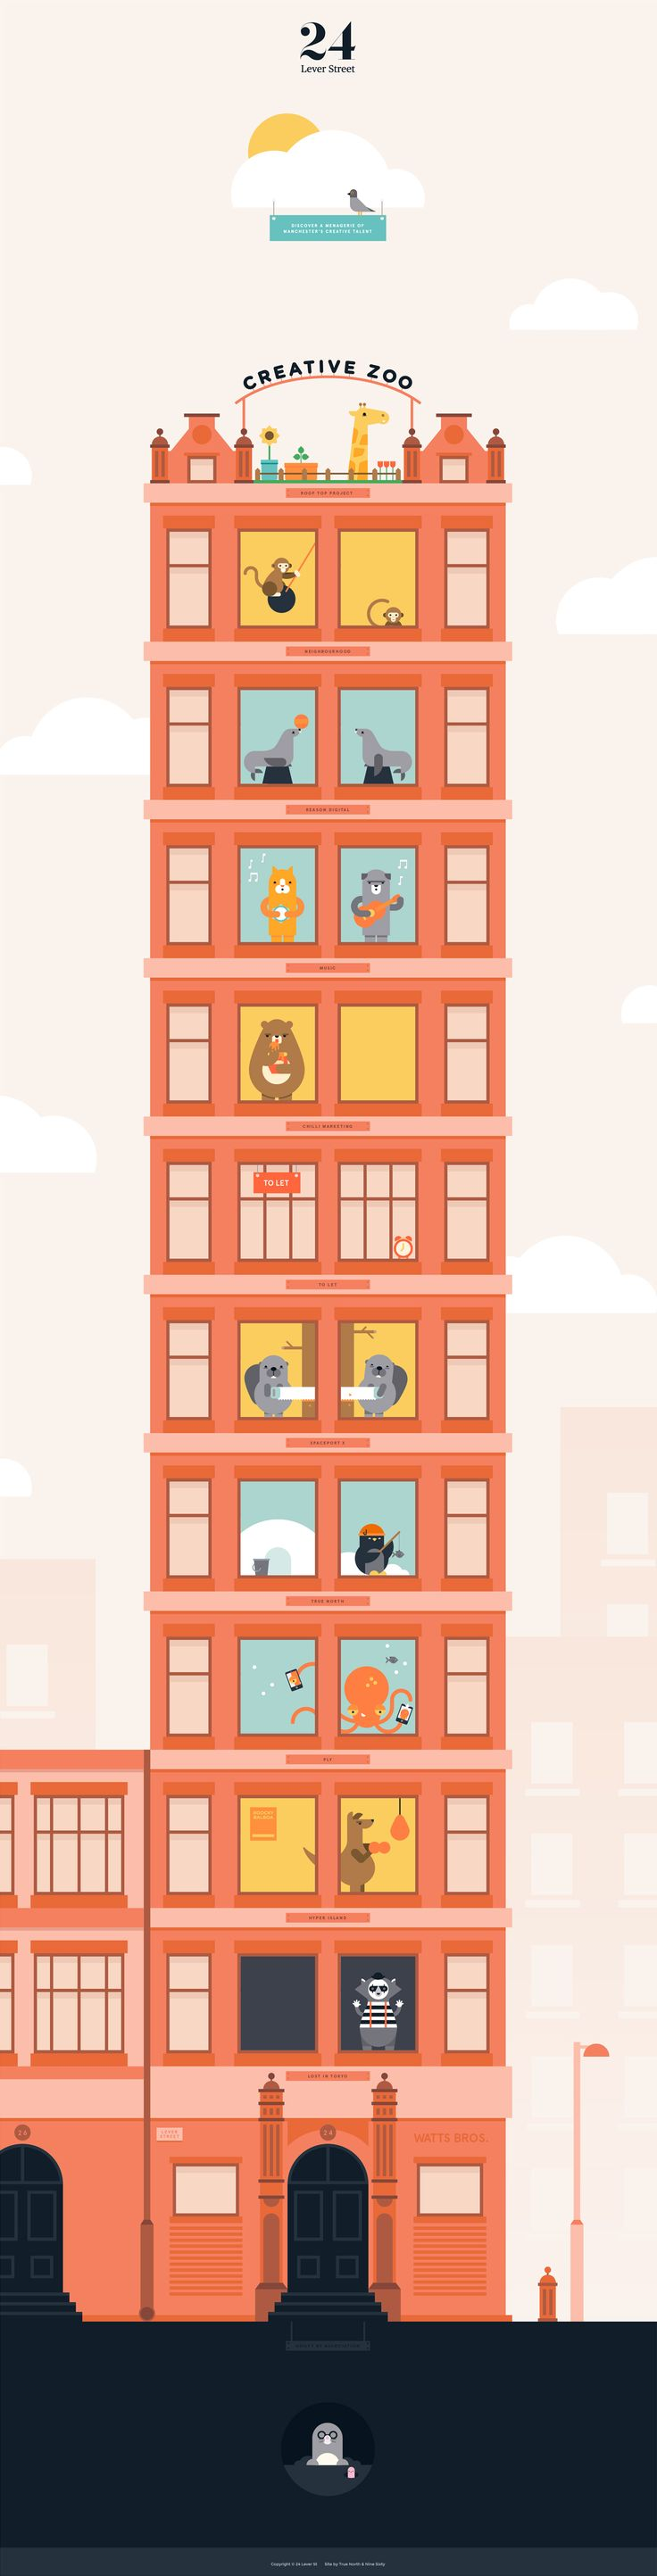 What a gorgeous colorful One Pager filled with fun character animations. The long scrolling Single Page website features a tall illustrated building showcasing which tenants occupy each floor of '24 Lever Street' along with the vacancies. Lovely work this by Nine Sixty digital agency from UK.